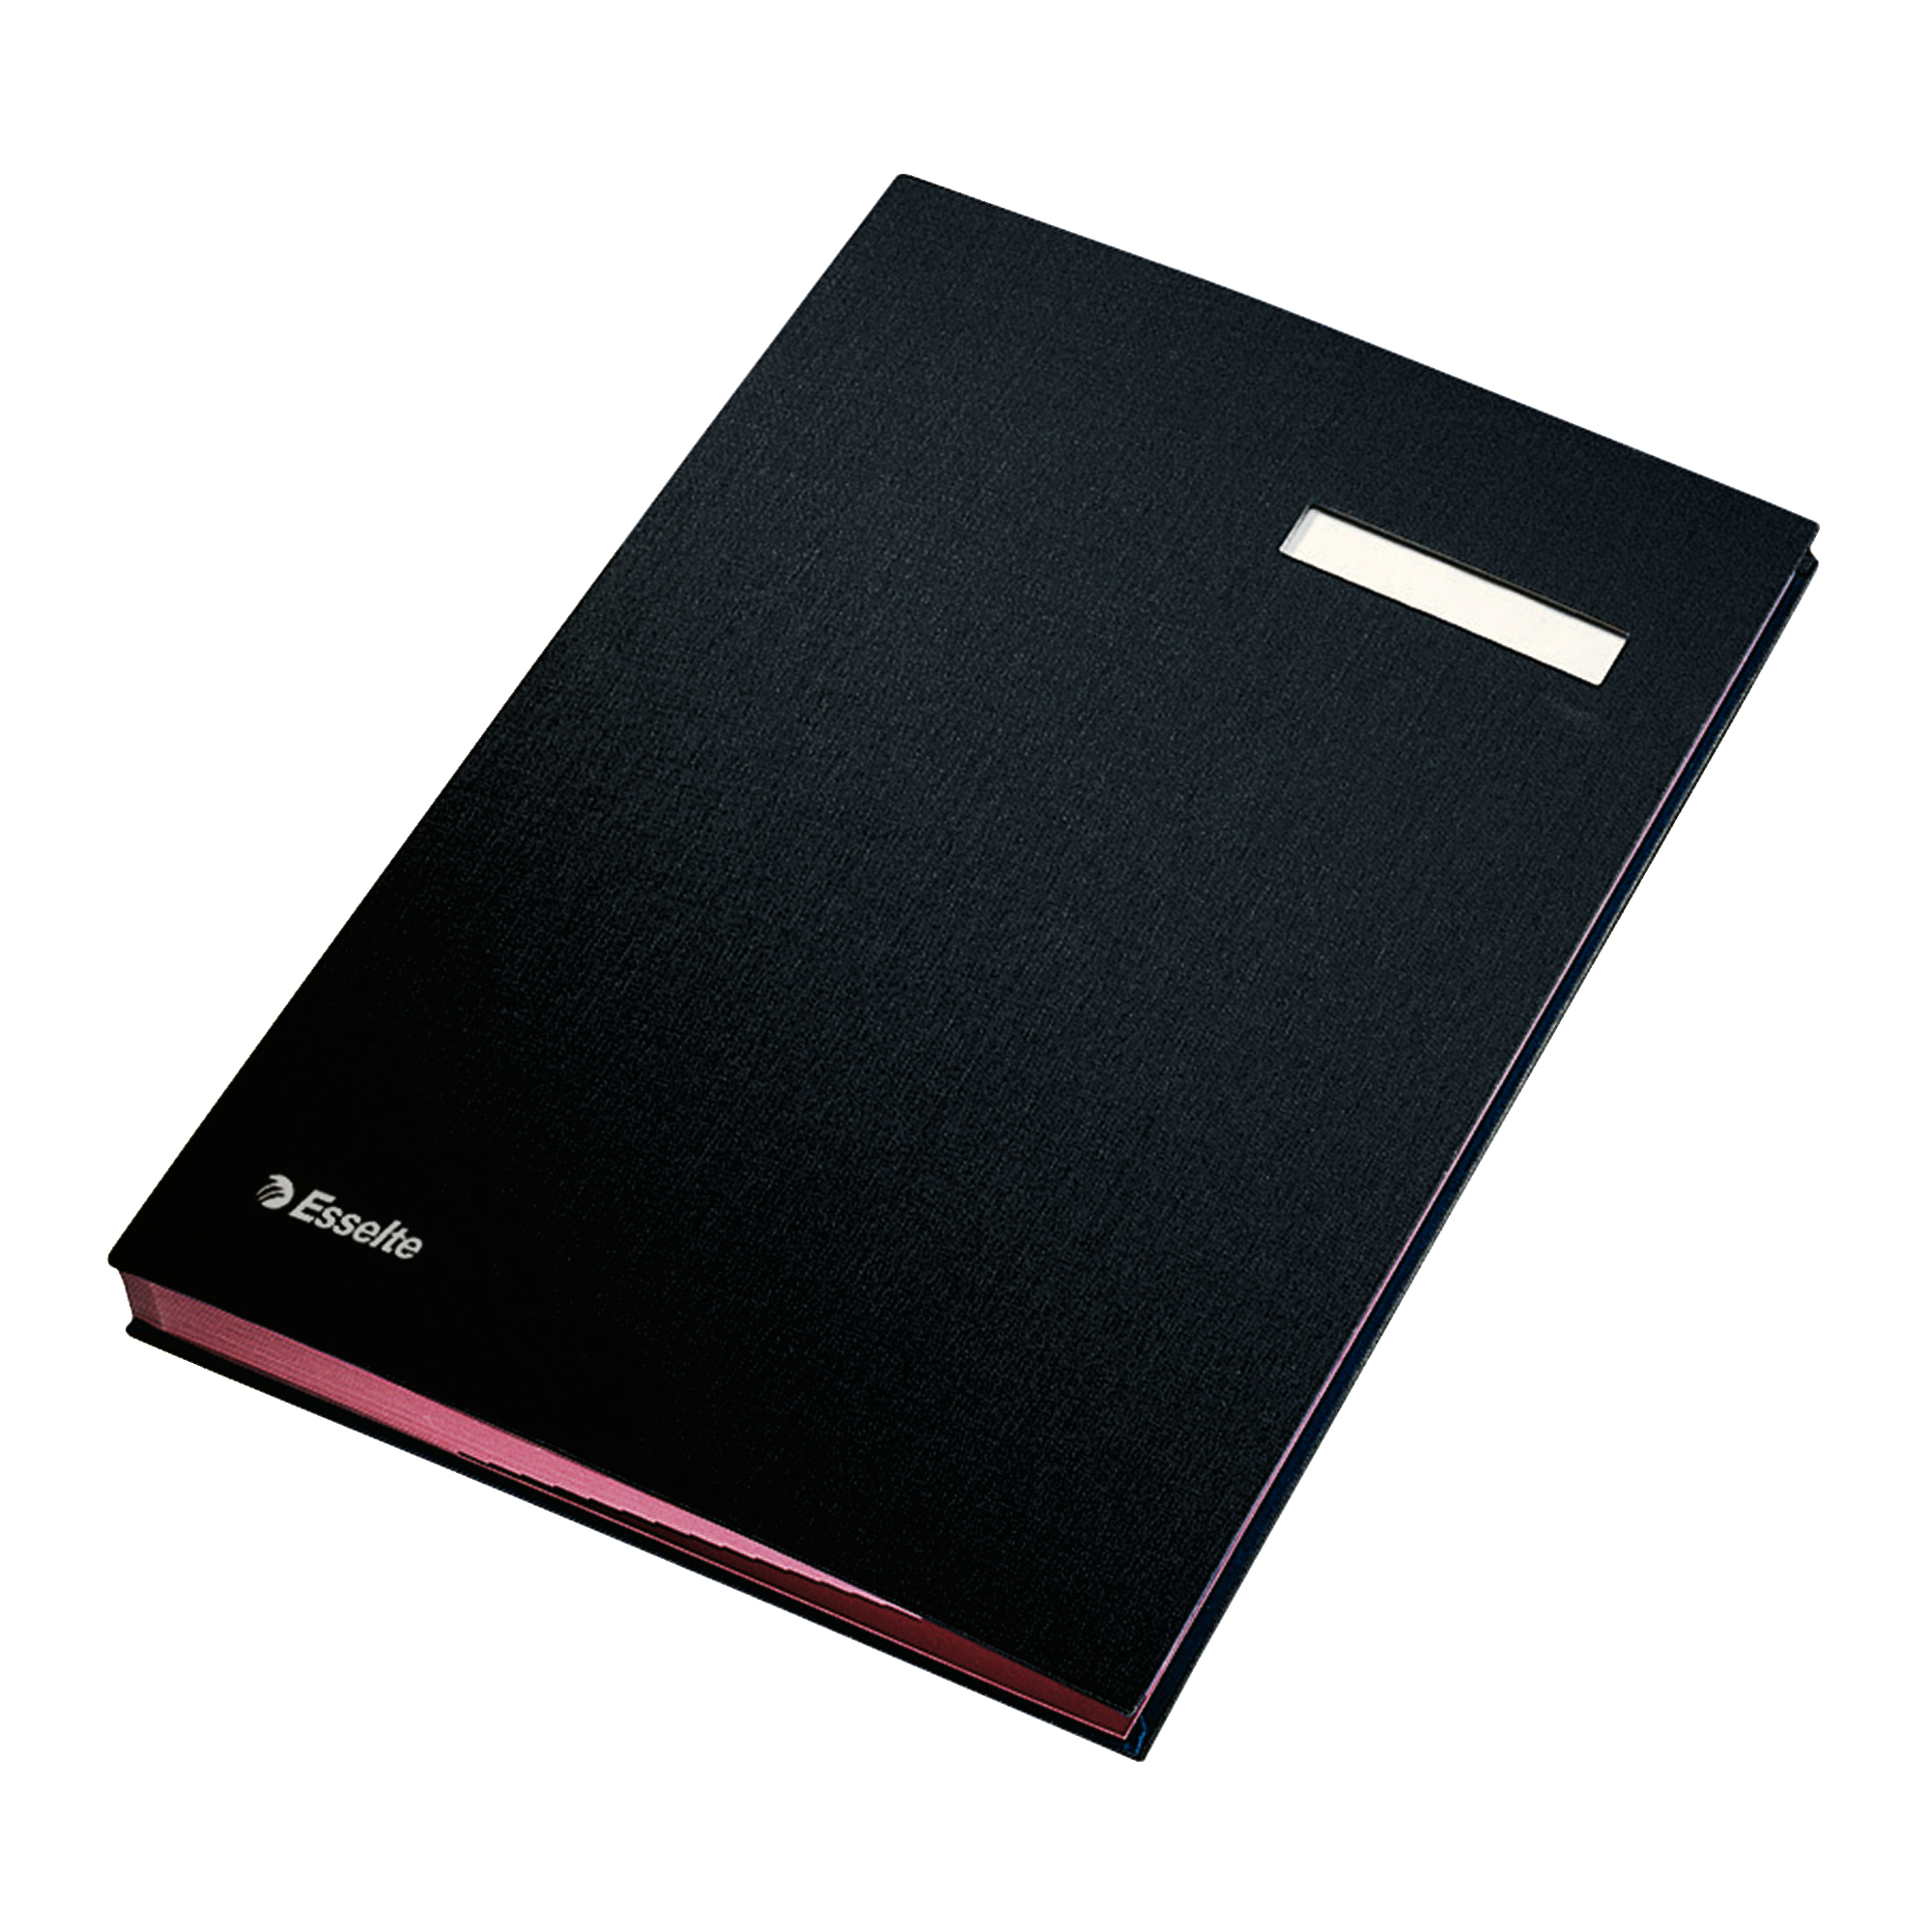 Signature Books Signature Book 20 Compartments Durable Blotting Card 340x240mm Black